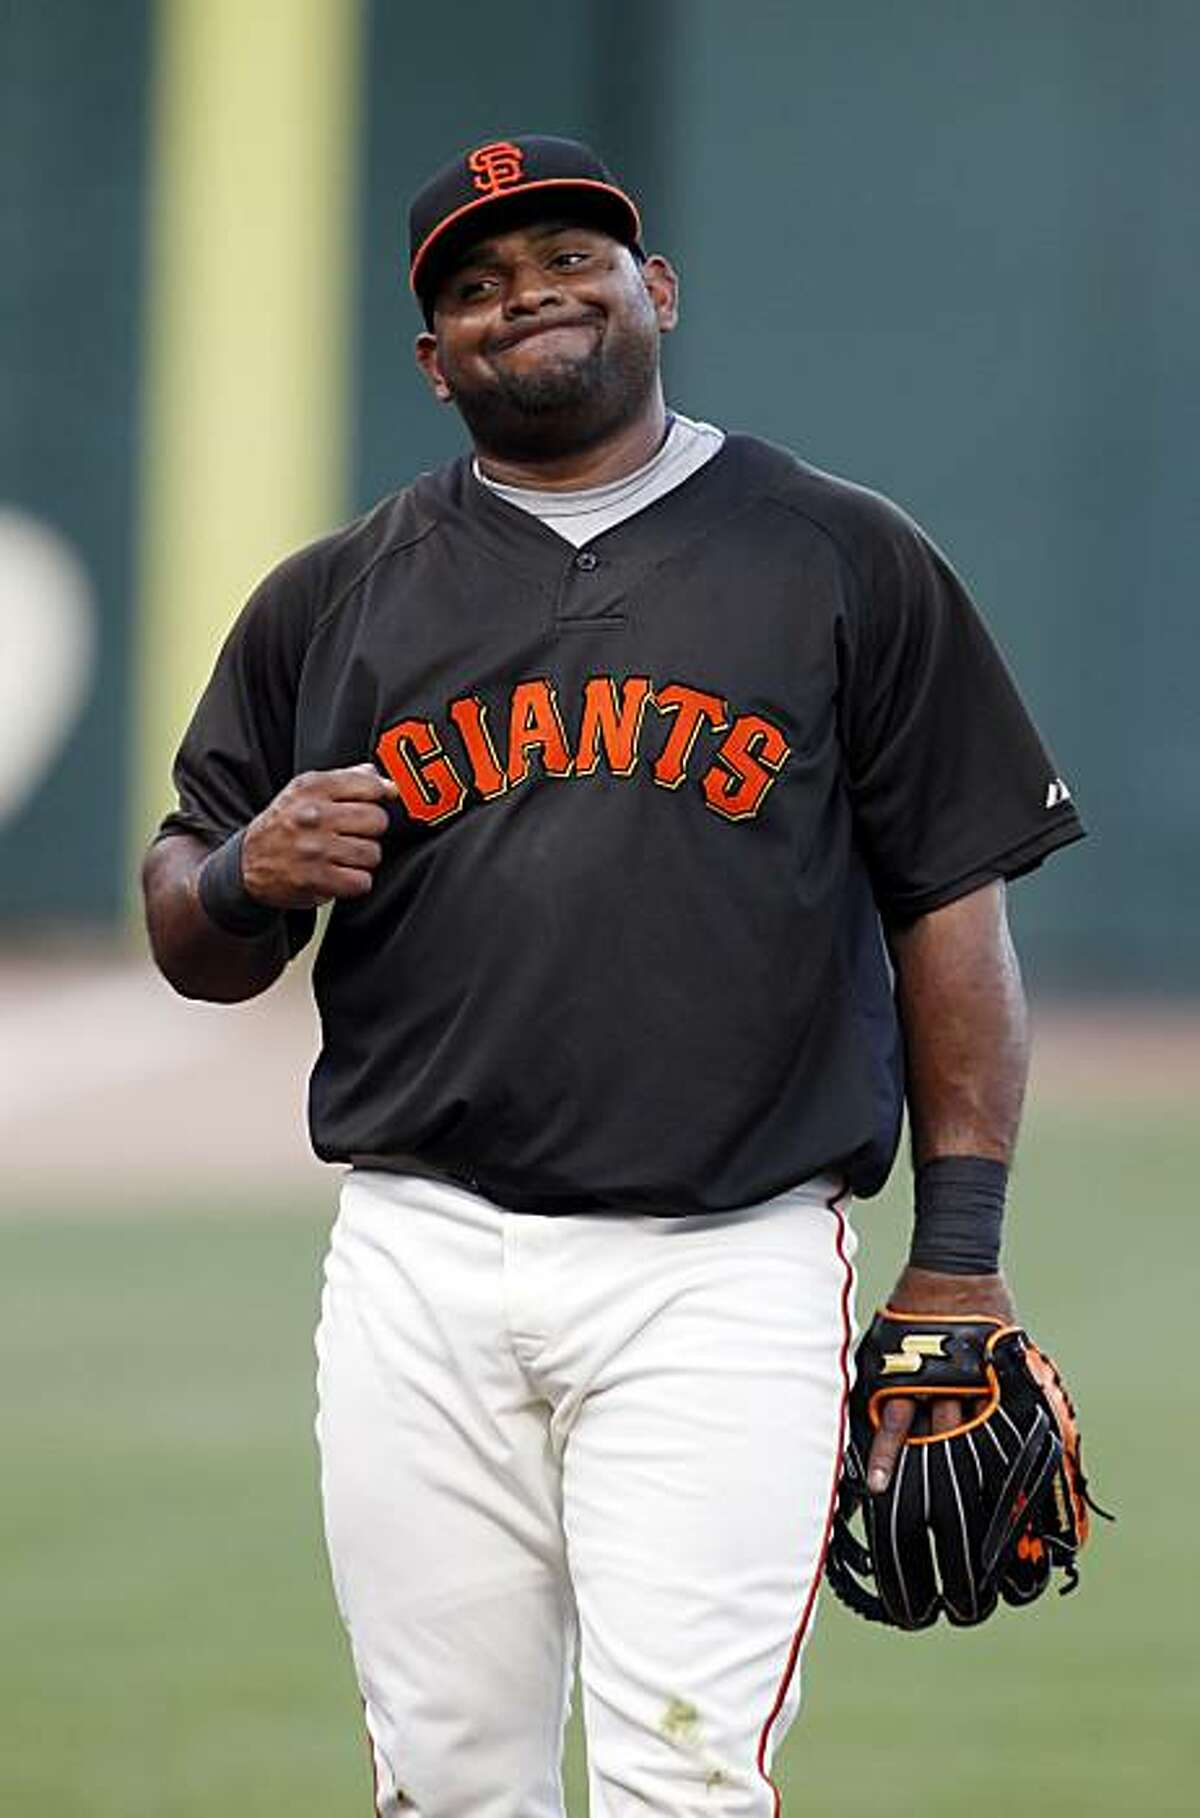 Pablo Sandoval makes a face after missing an infield hit during batting practice. The San Francisco Giants practiced AT&T Park in San Francisco, Calif., on Tuesday, October 5, 2010, in preparation for their National League Division Series against the Atlanta Braves.